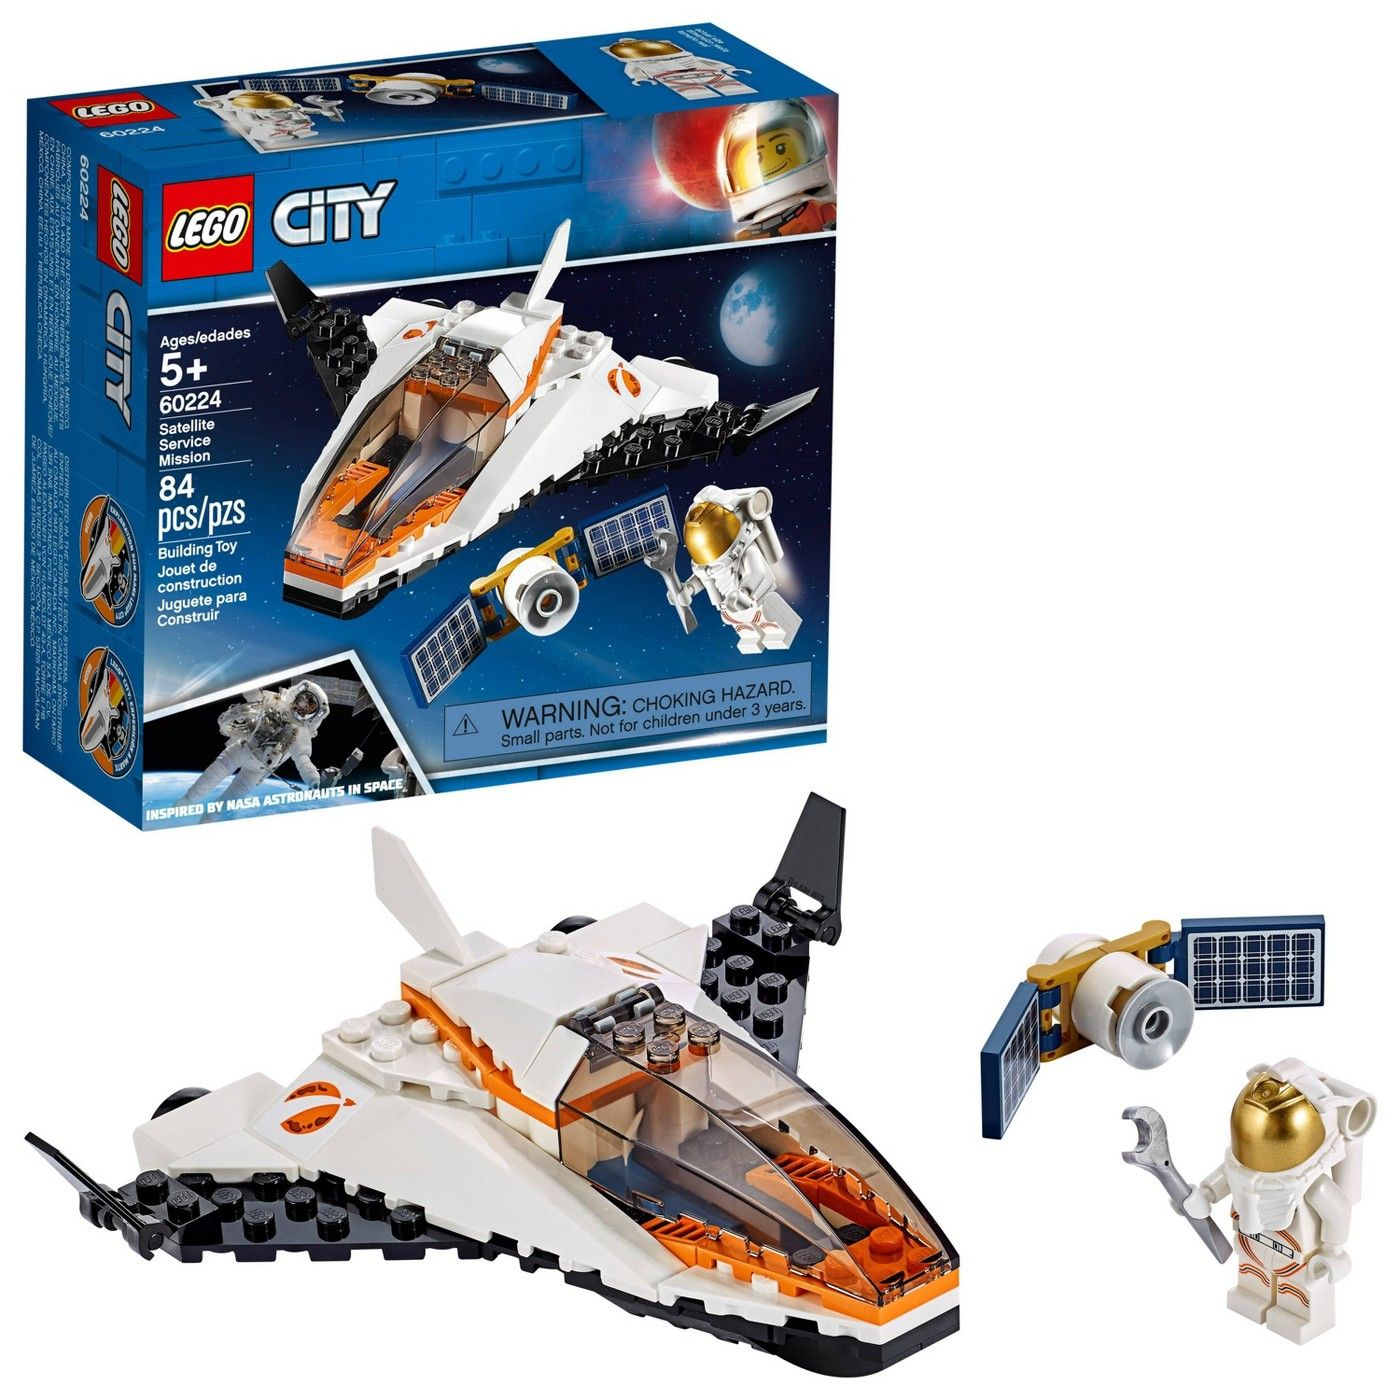 Lego City Space Satellite Service Mission 60224 Space Shuttle Toy Building Set 84pc Affiliate Satellite Affiliate Lego City Space Lego City Lego City Sets